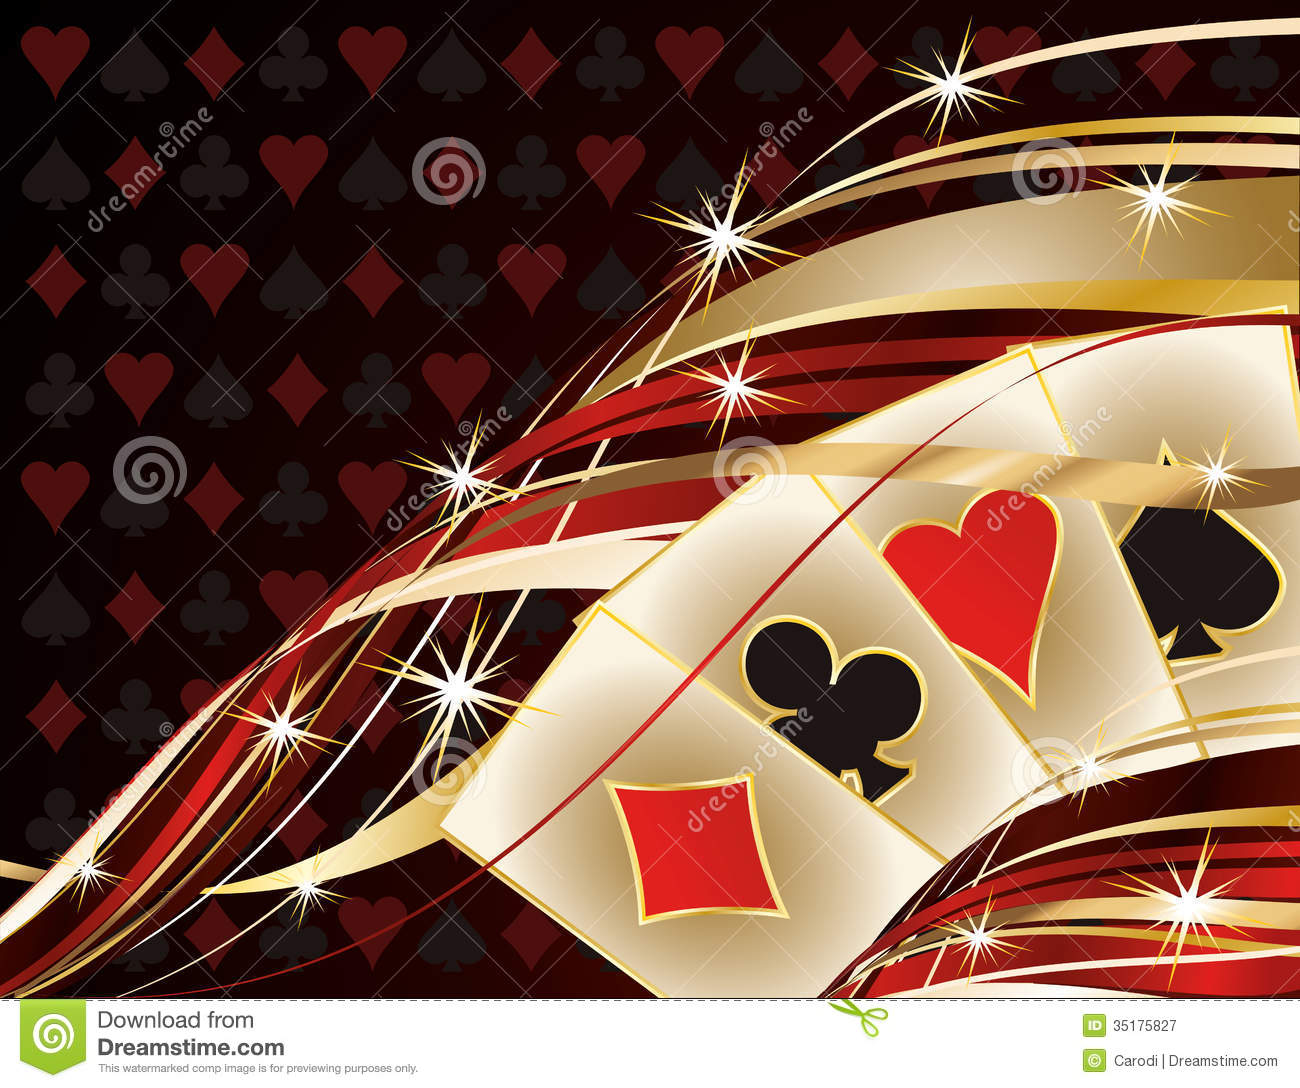 safest online casino onlin casino